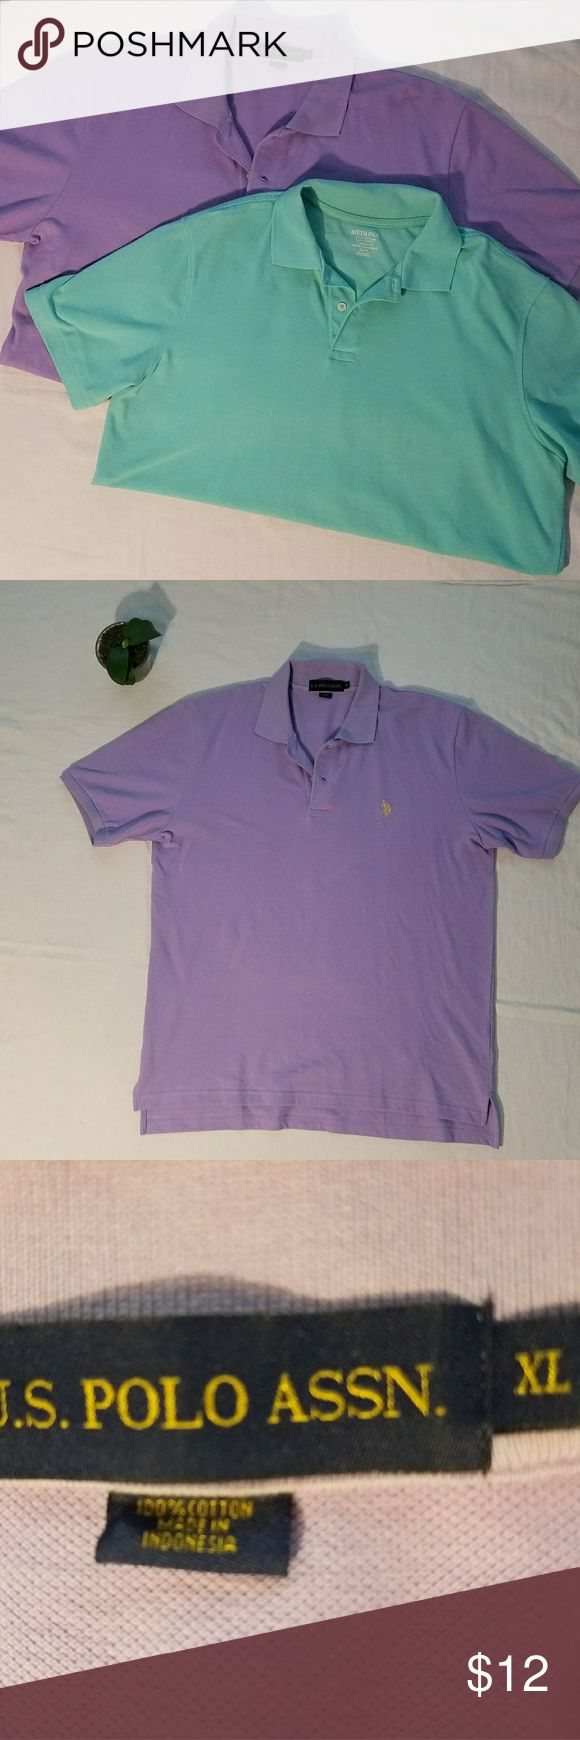 BUNDLE of 2 Short Sleeve Polo Shirts Size XL ~BUNDLE of 2 Short Sleeve Polo Shirts  Brands: U.S. POLO ASSN. & Merona ~Size: XL  ~Measurements: Coming Soon  *Measurements are approximate* ~Gently Used | In Good Condition |   ~Feel free to ask Questions and Make an Offer~ ~Stock #: U.S. Polo Assn. Shirts Polos